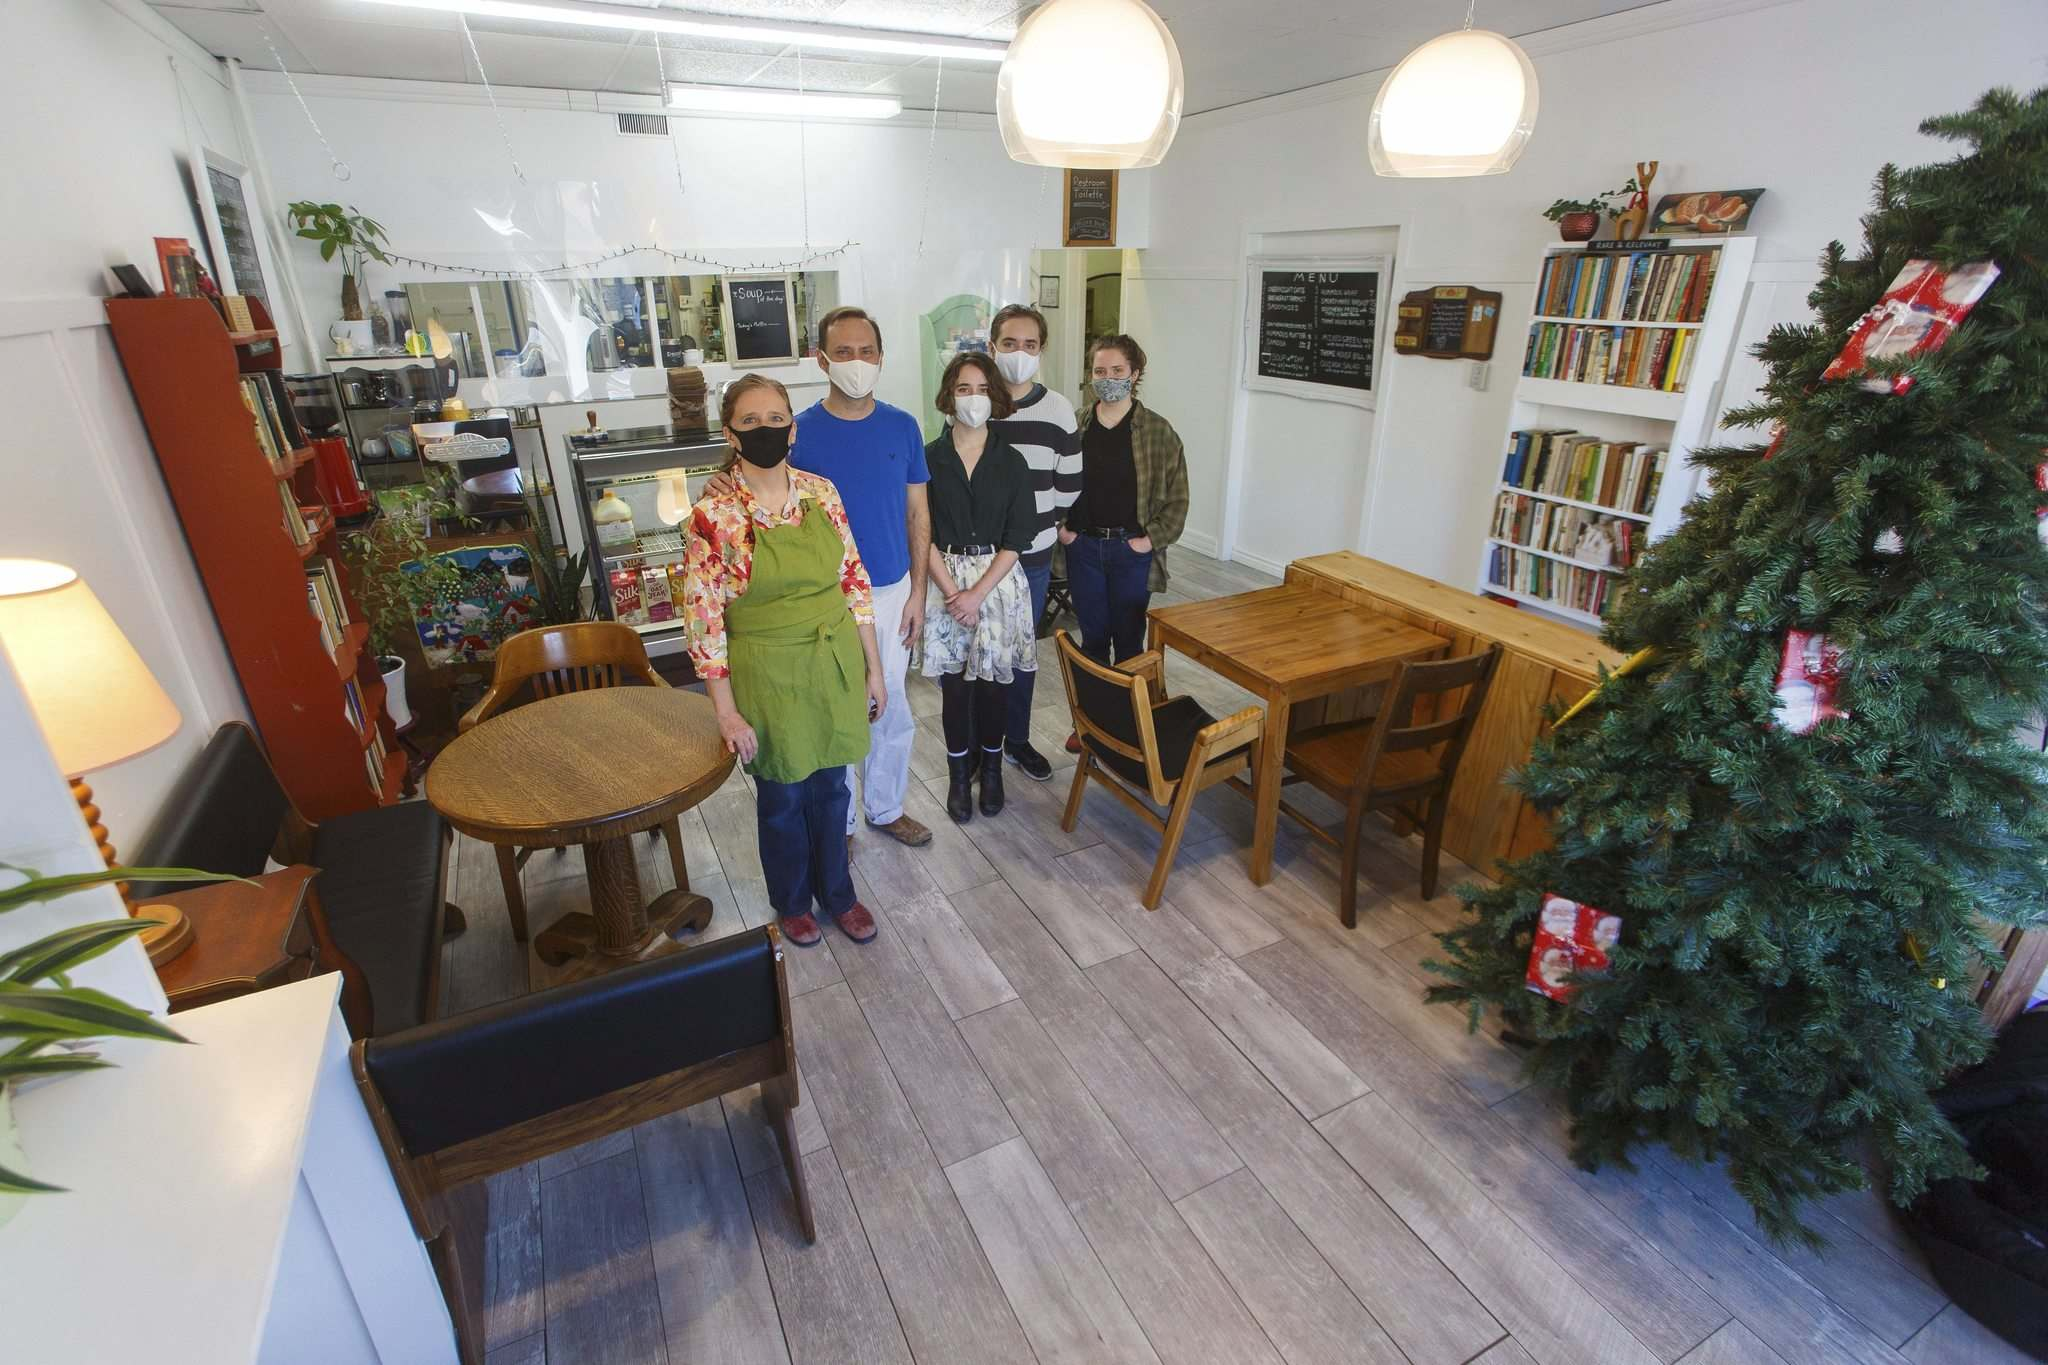 MIKE DEAL / WINNIPEG FREE PRESS</p><p>Sandra Drosdowech and Jason Holland, former co-owners of Mondragon, left, with their kids Sage, Andrew, and Emily, from left, at their new Thyme Café.</p>